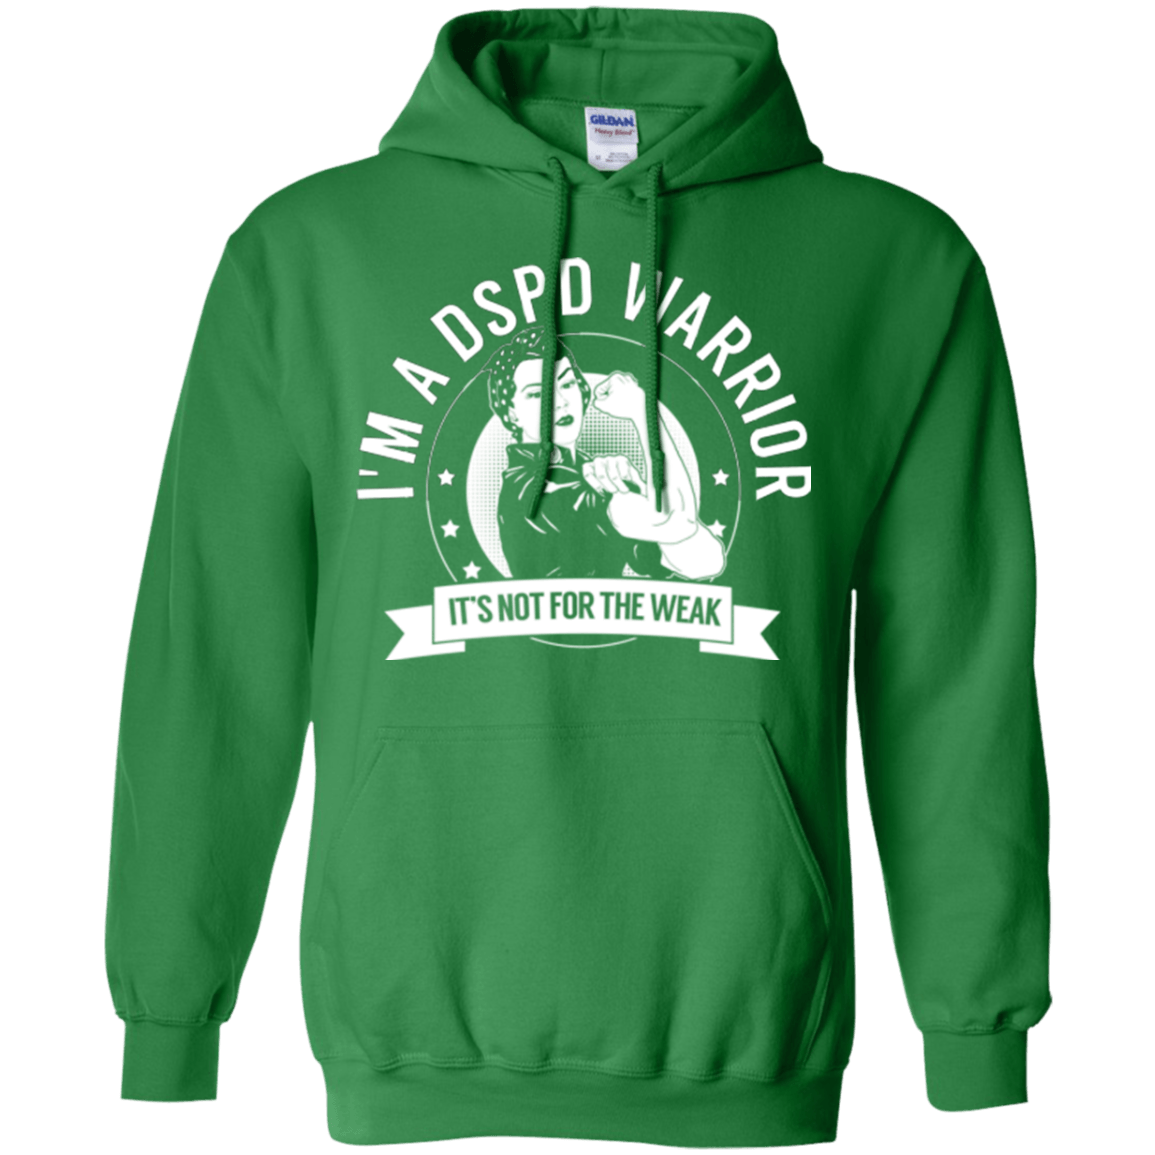 Delayed Sleep Phase Disorder - DSPD Warrior Not For The Weak Pullover Hoodie 8 oz. - The Unchargeables